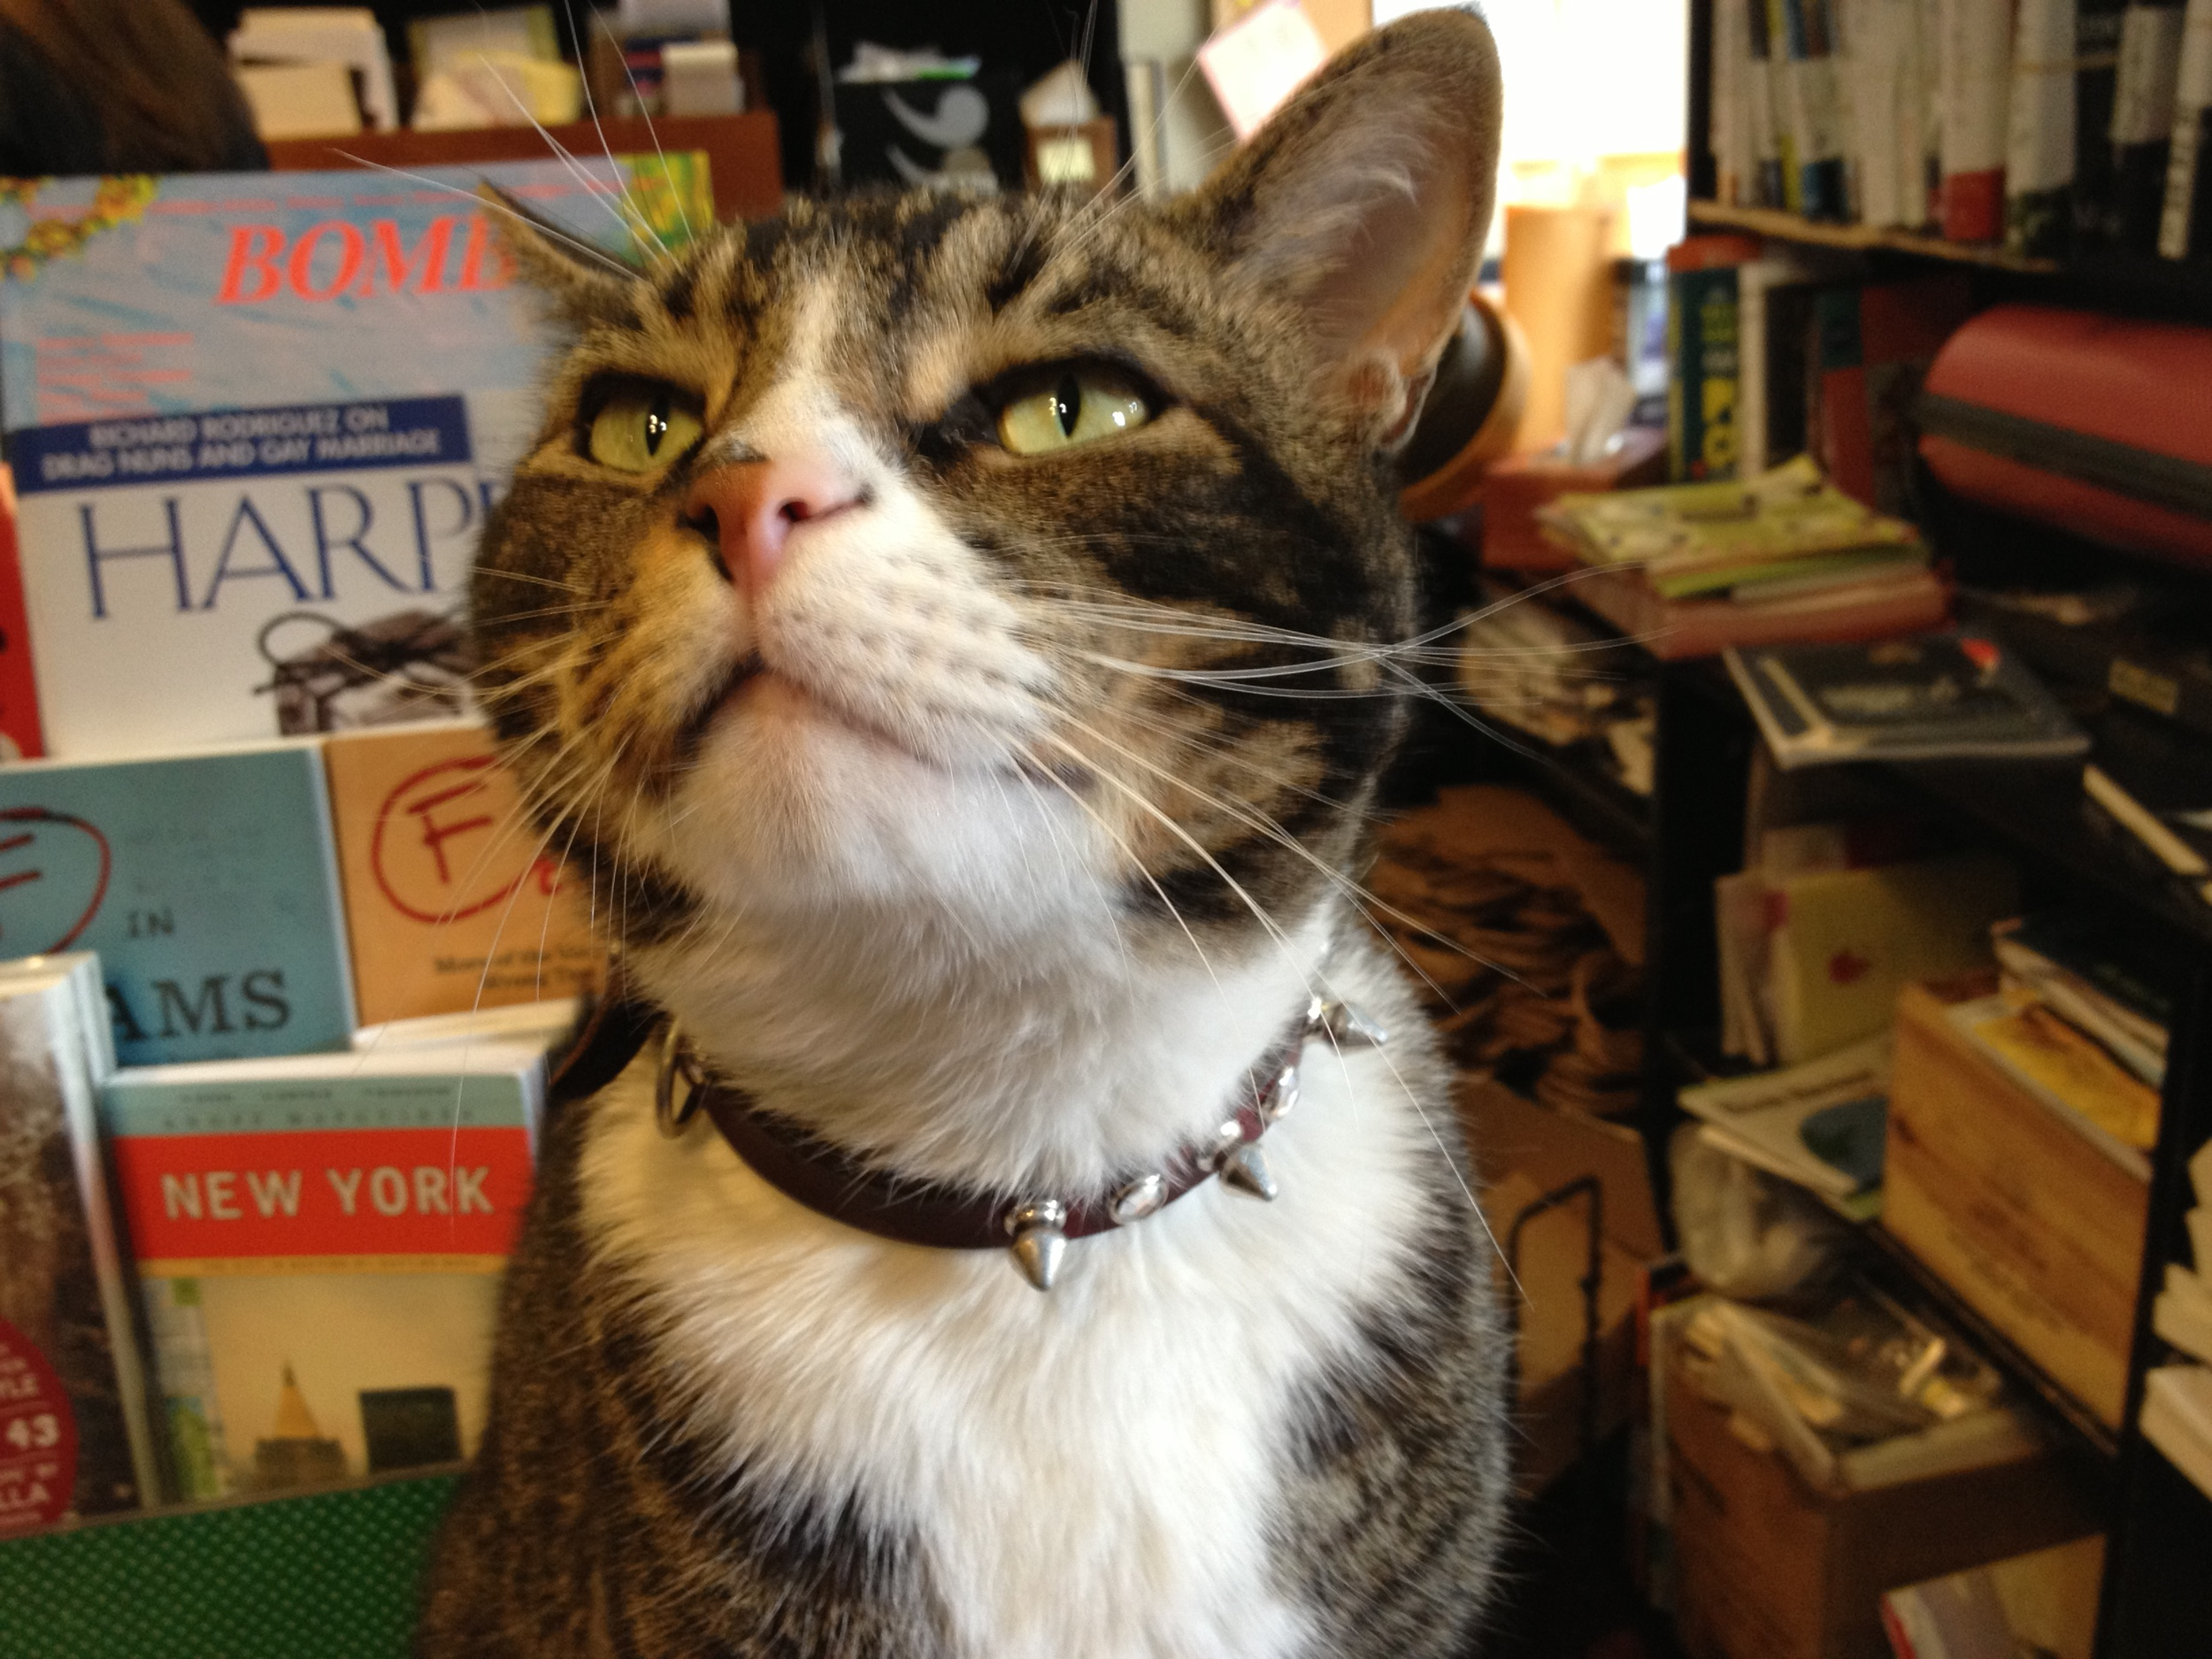 Tiny, co-owner of Community Bookstore (Credit: Photo by author)